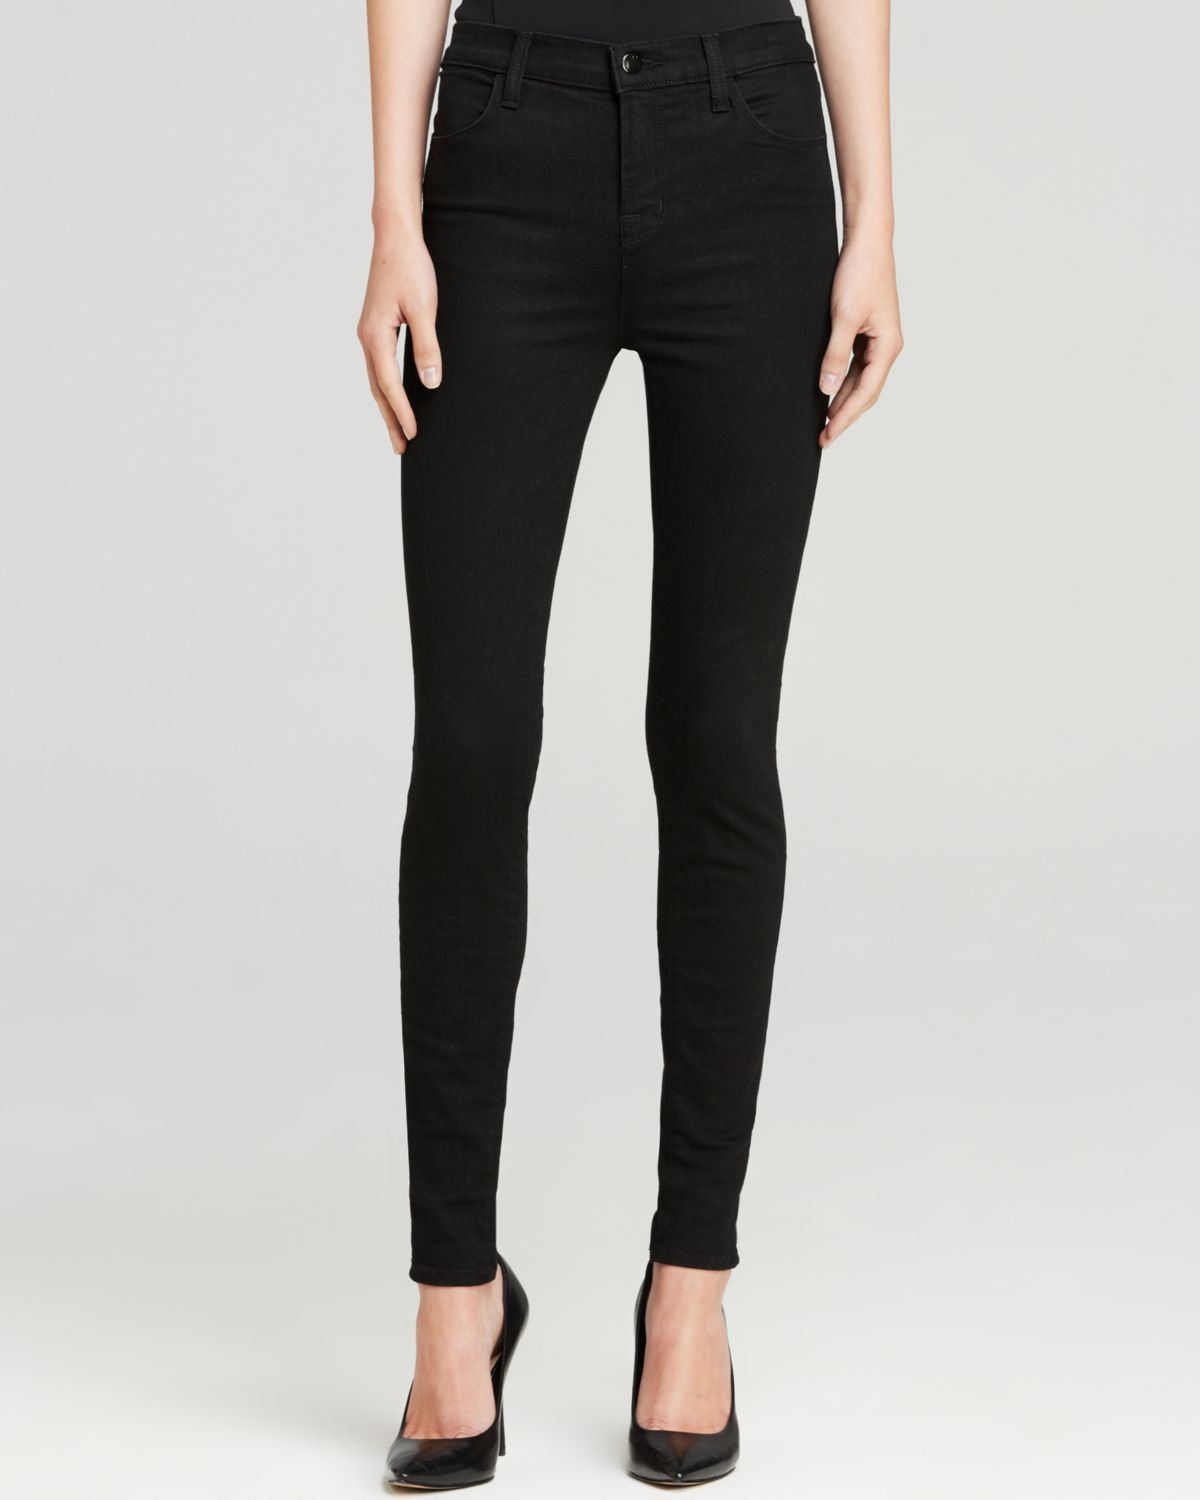 Vanity Jeans For Men : J brand jeans photo ready maria high rise skinny in